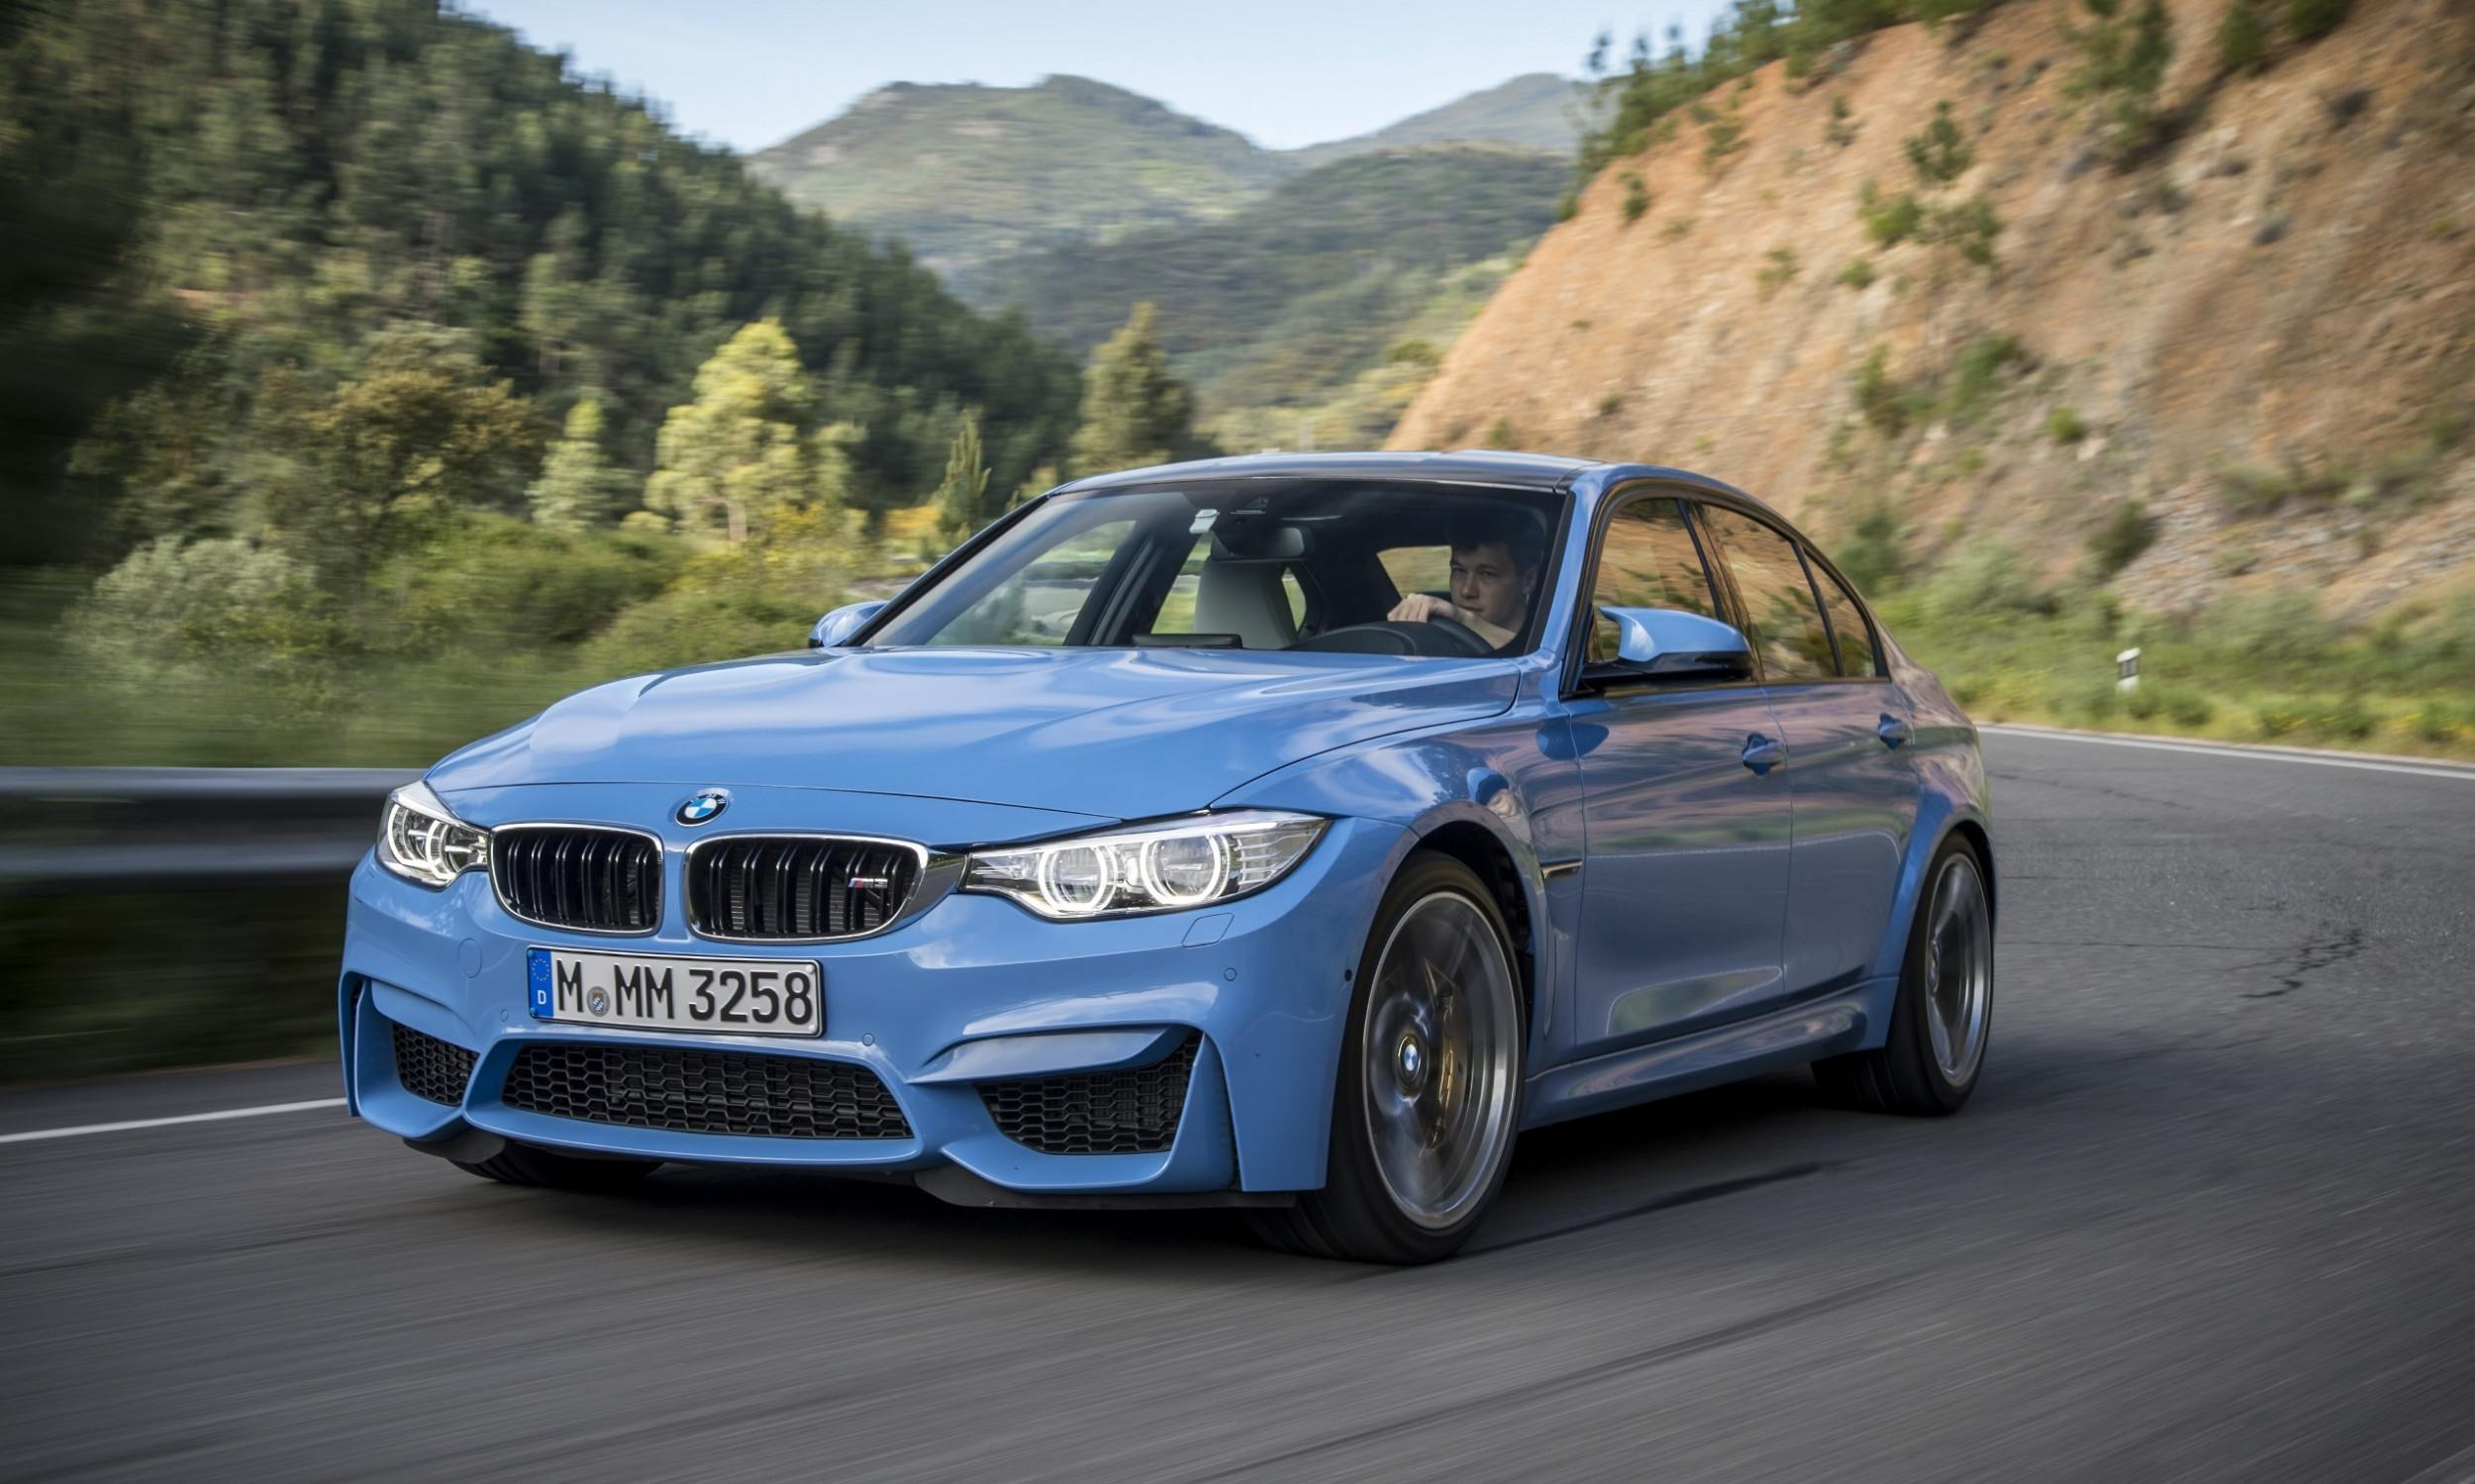 2015 Bmw M3 And M4 Meet The Legacy In 52 New Photos With E30 Sport Evolution E36 E46 And E90